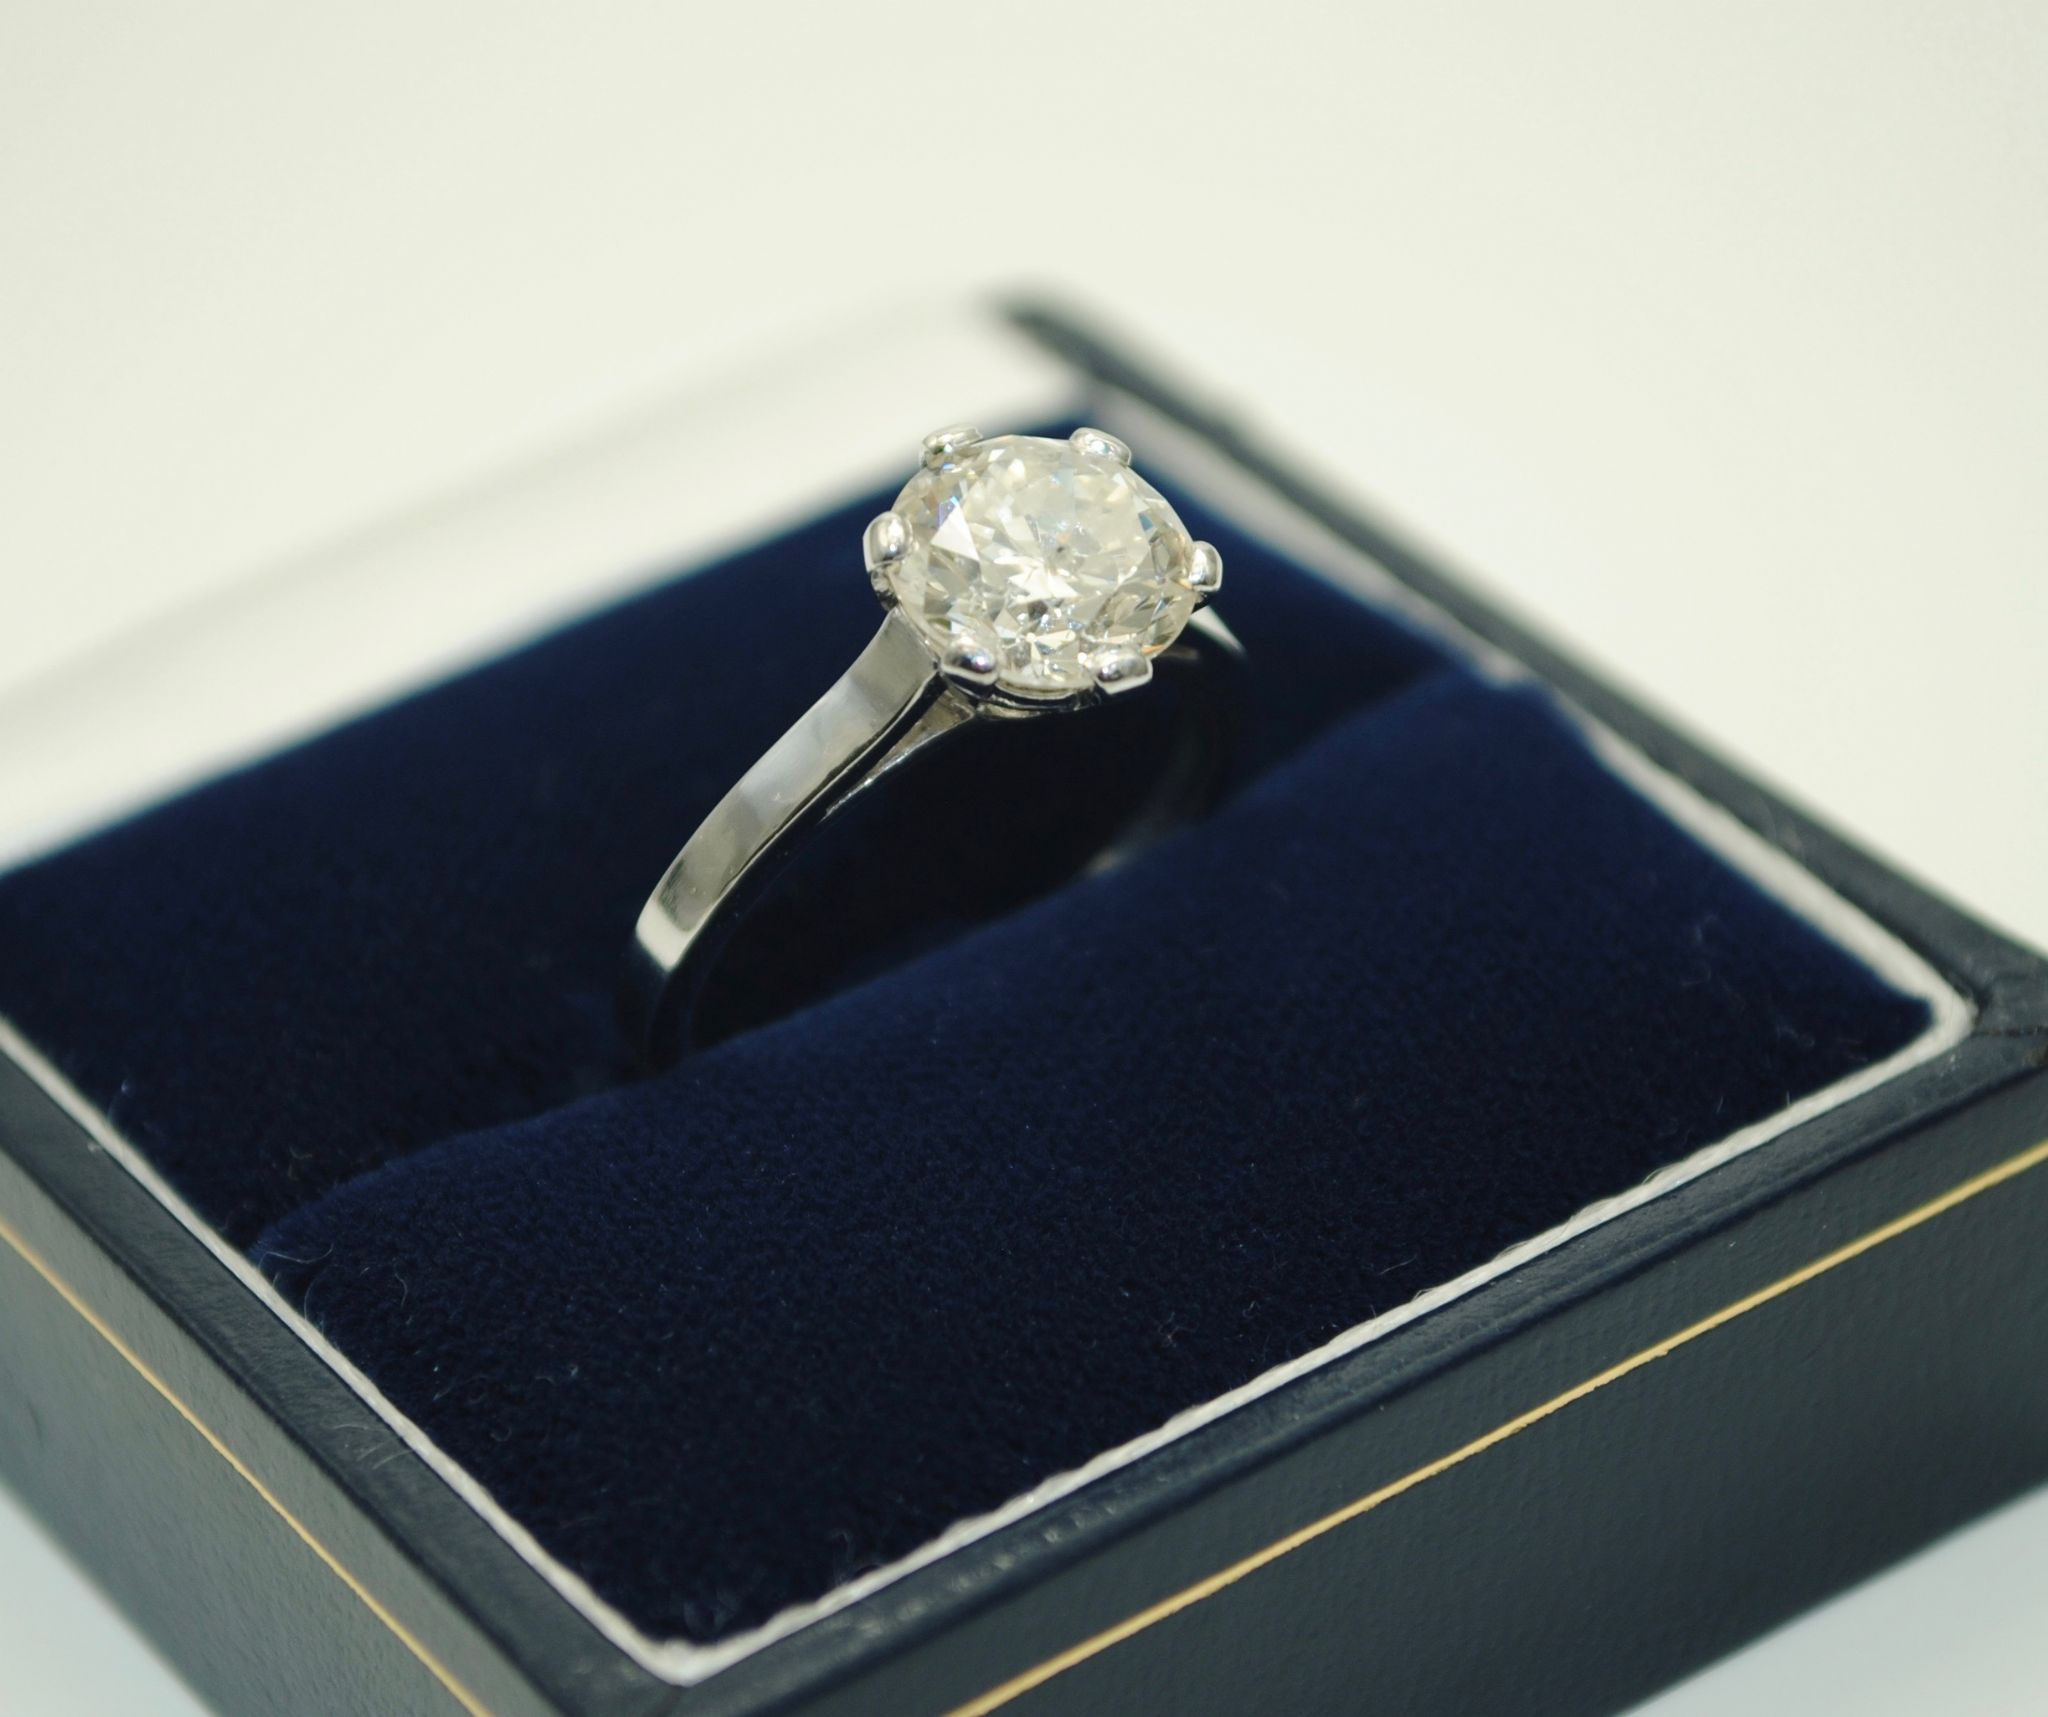 French Platinum 1 97ct Diamond Solitaire Ring UK Size L US Size 6